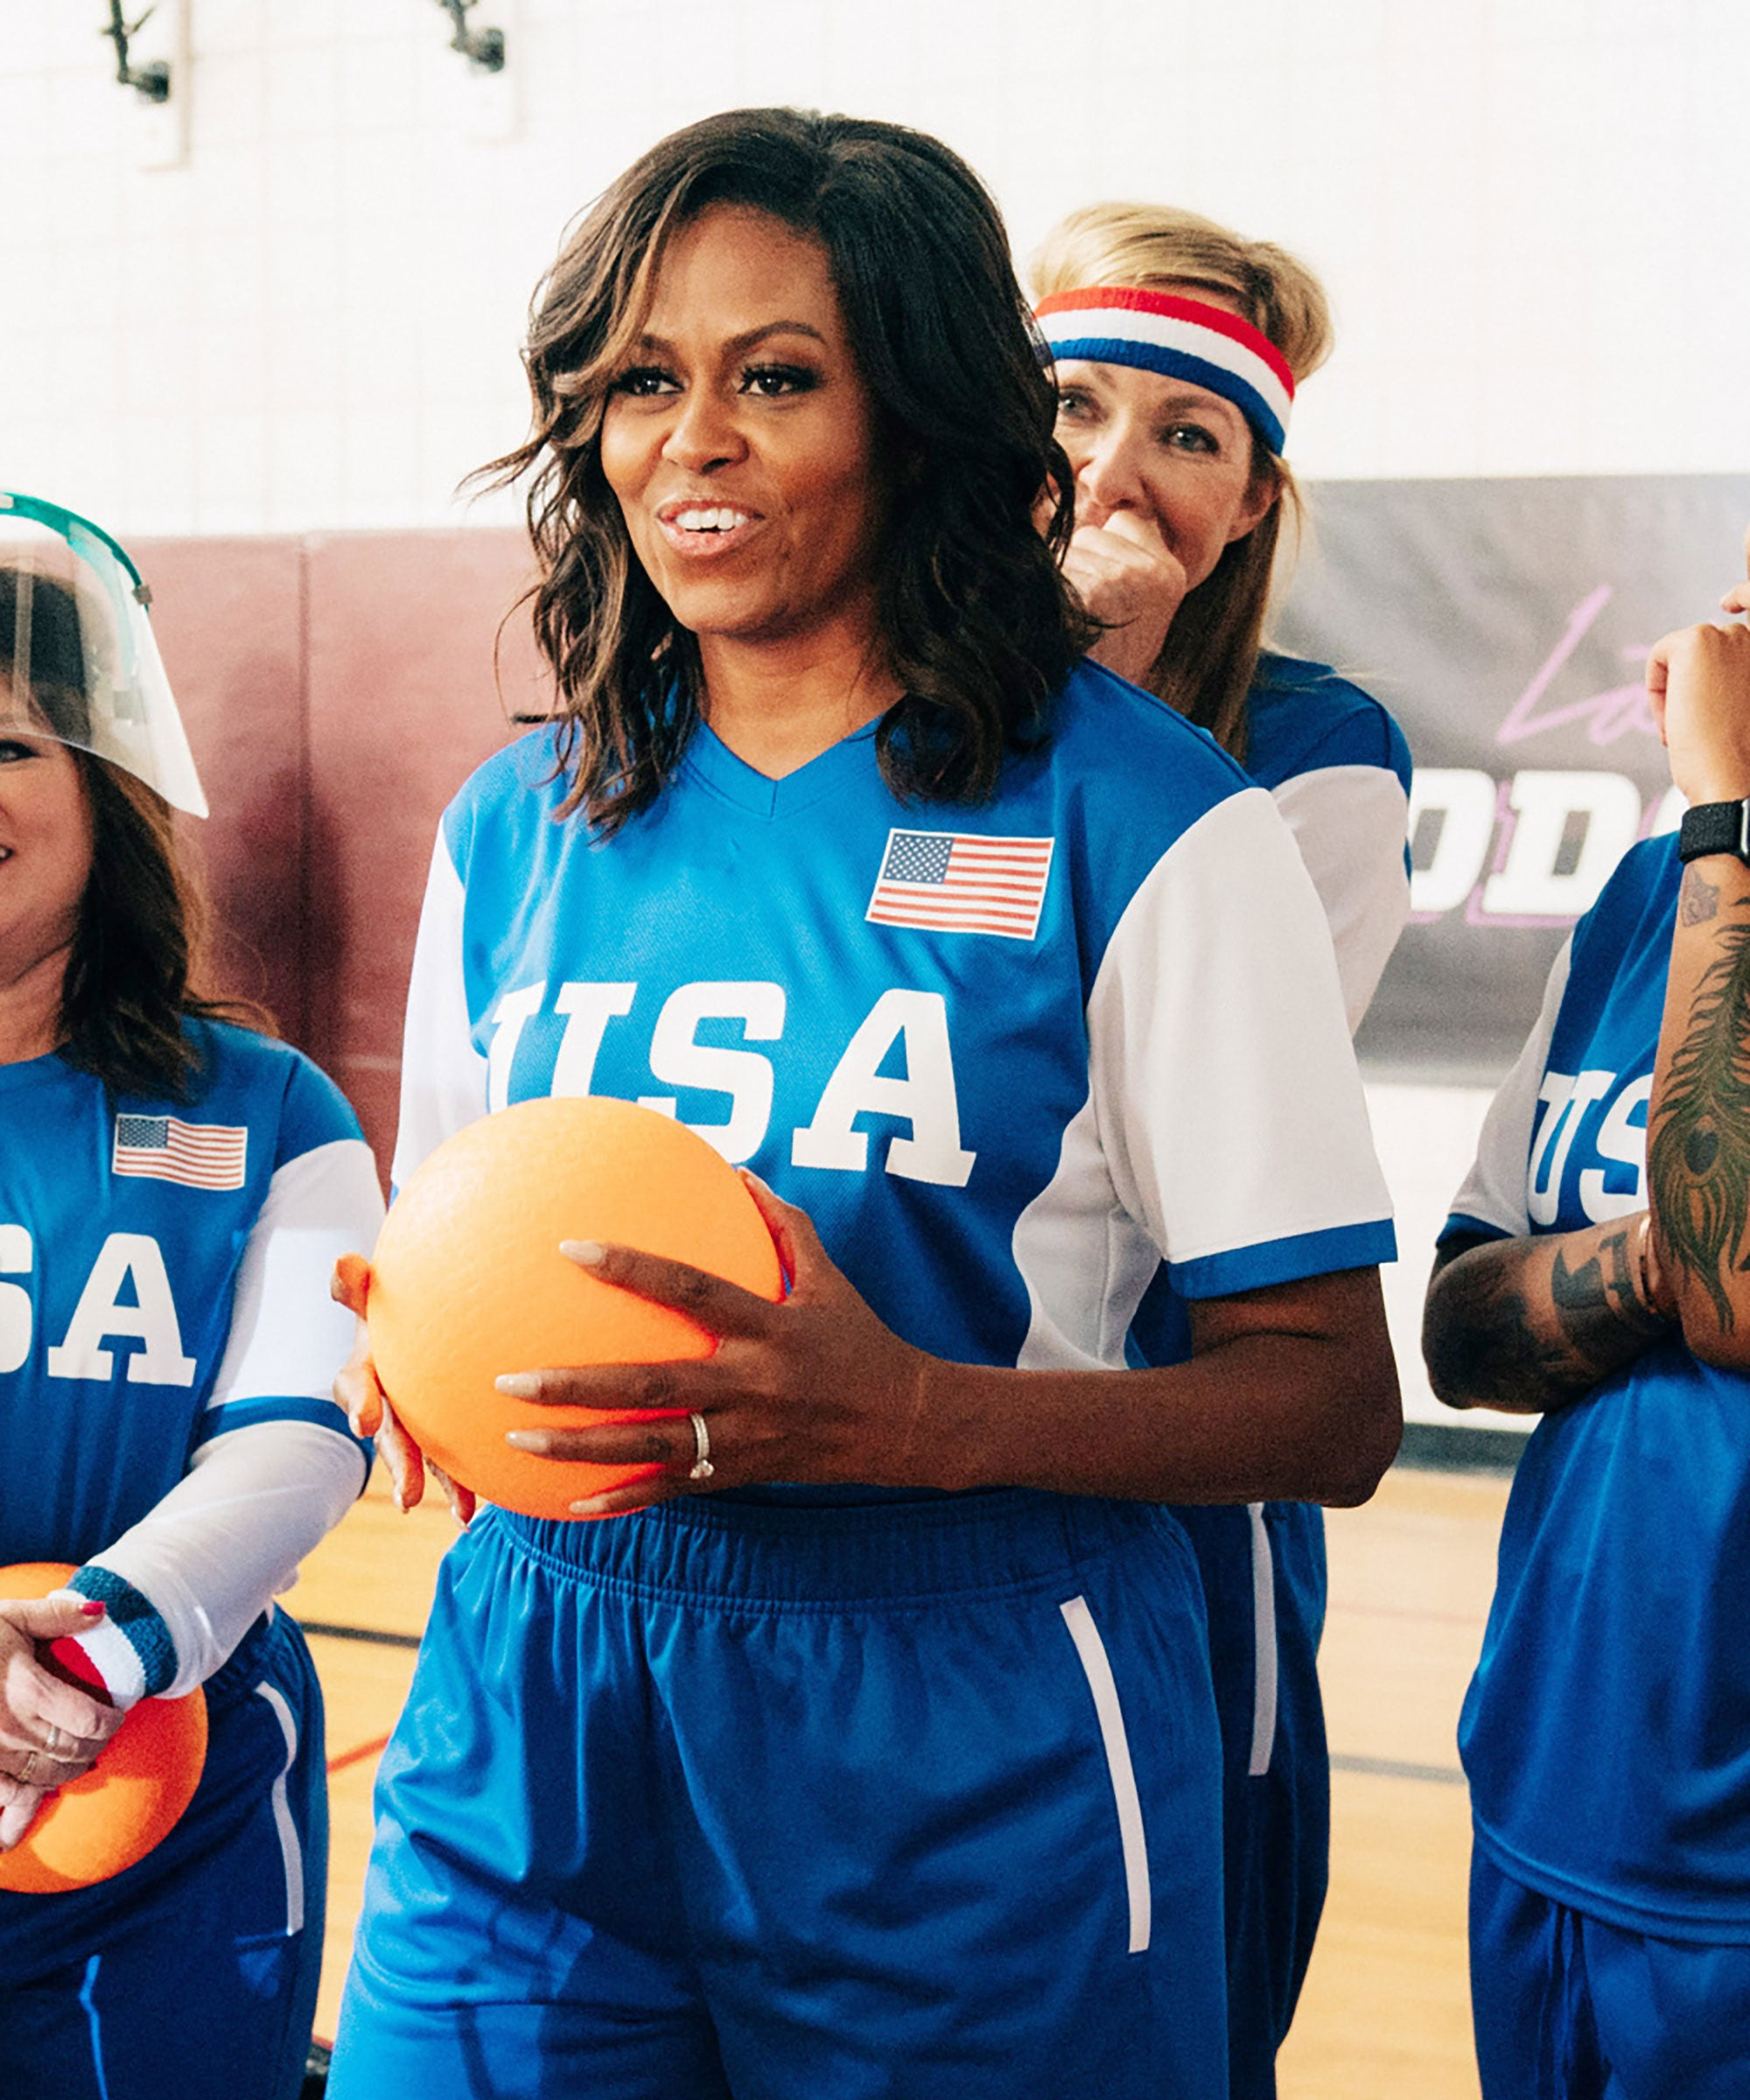 Michelle Obama's Workout Playlist Is Designed To Make You Move